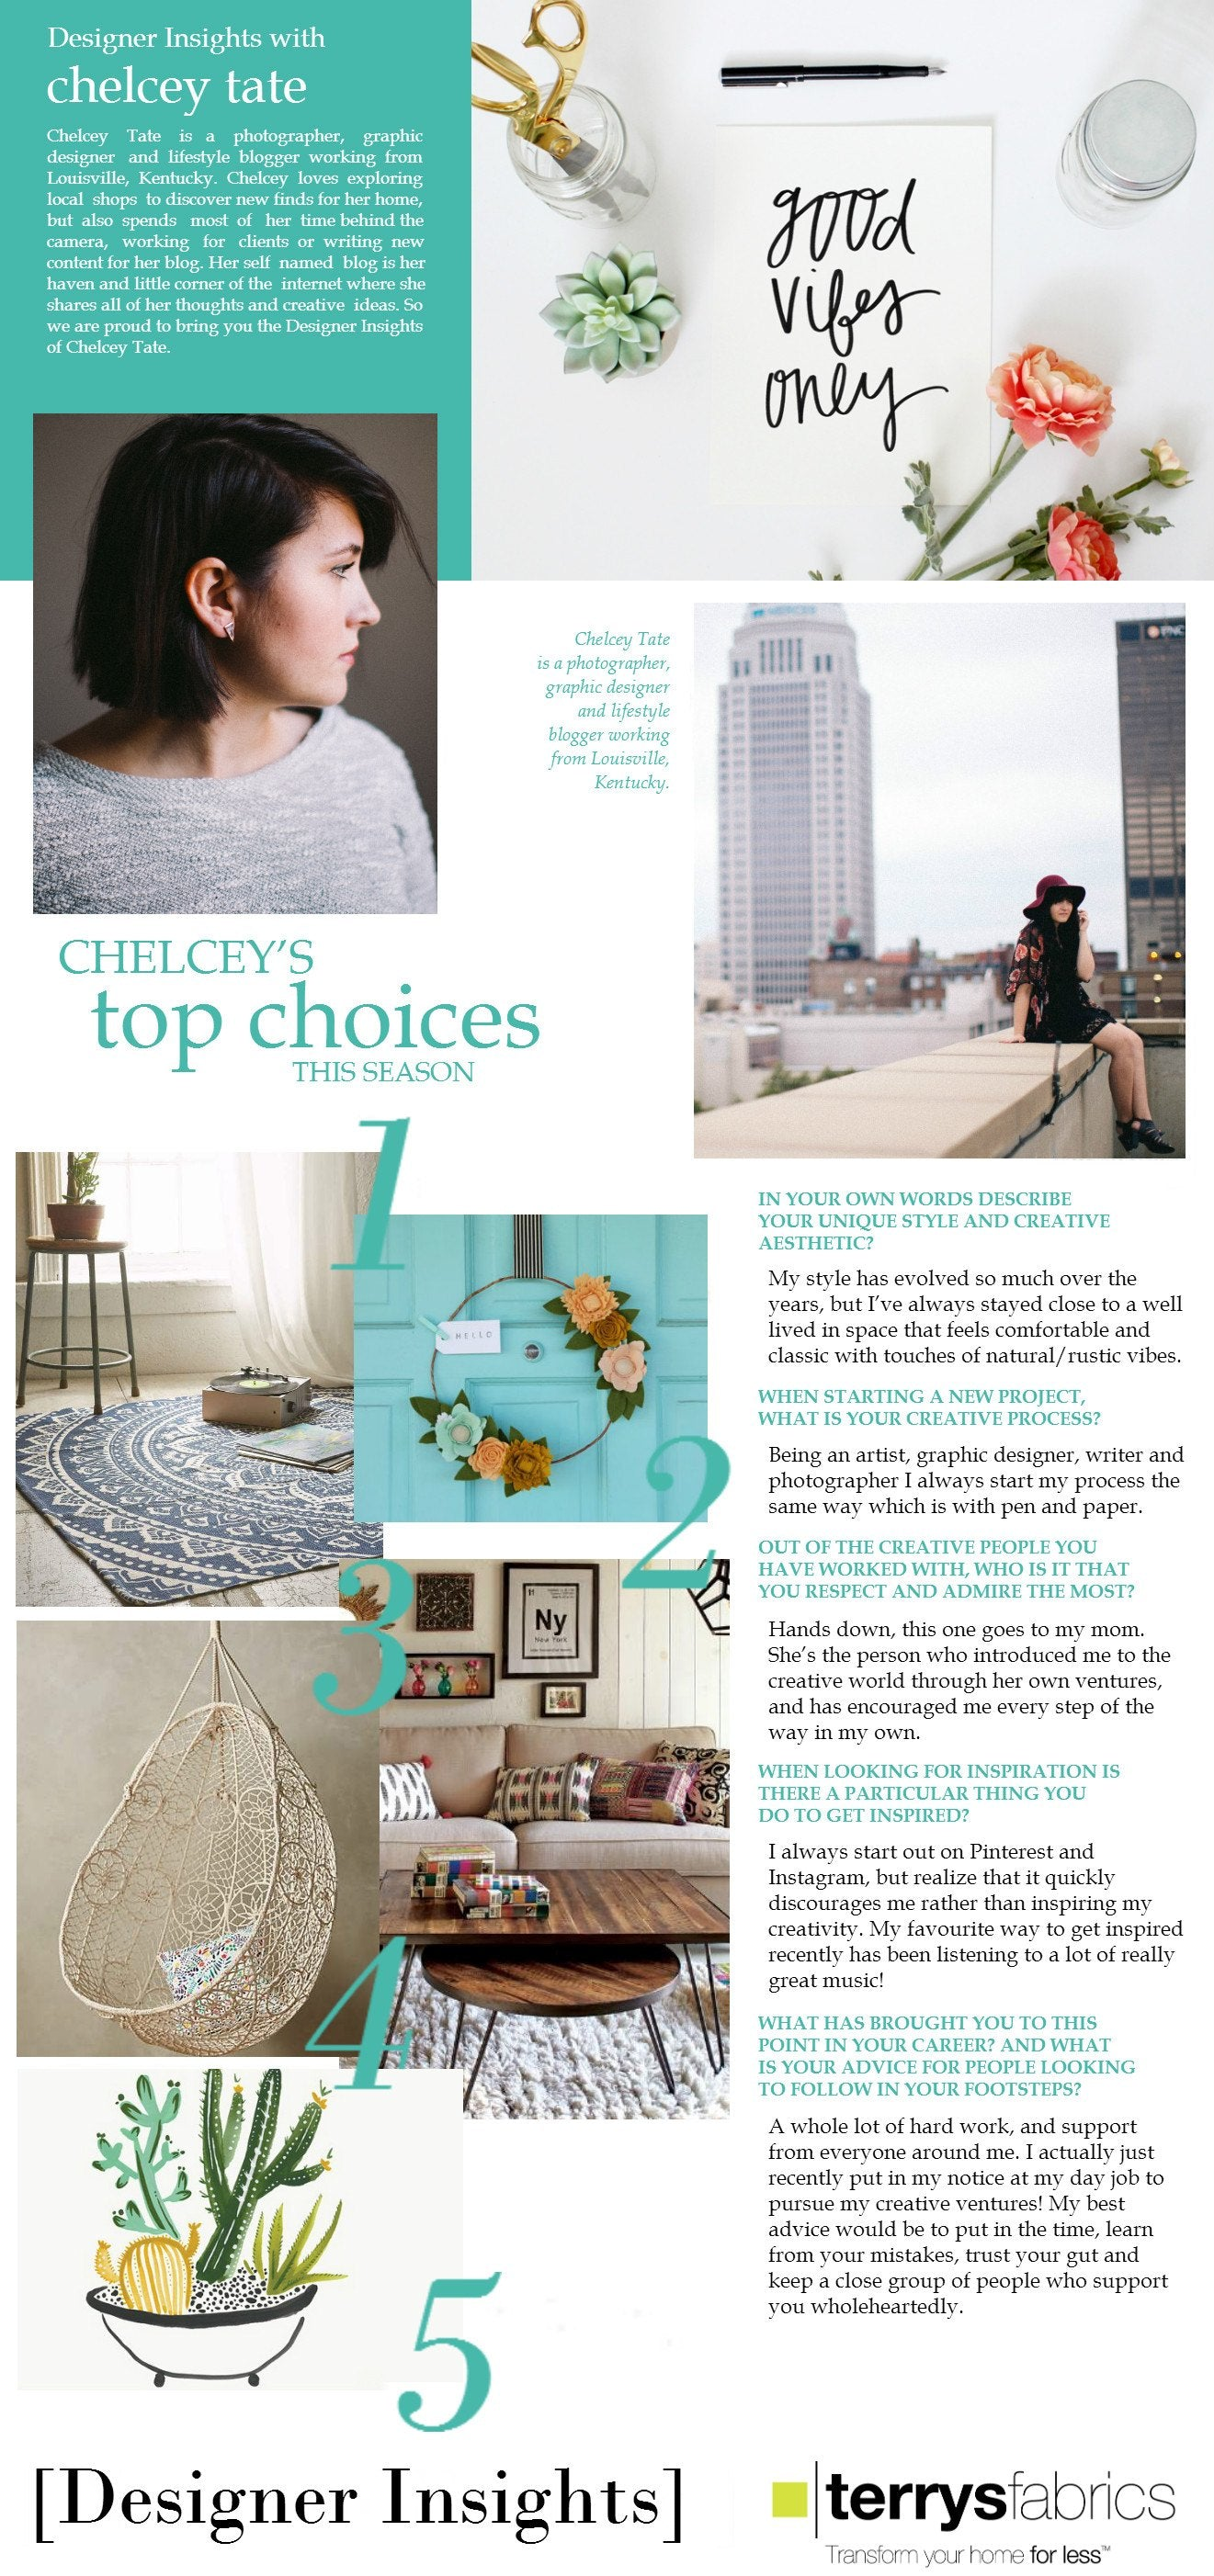 Designer Insights - Chelcey Tate